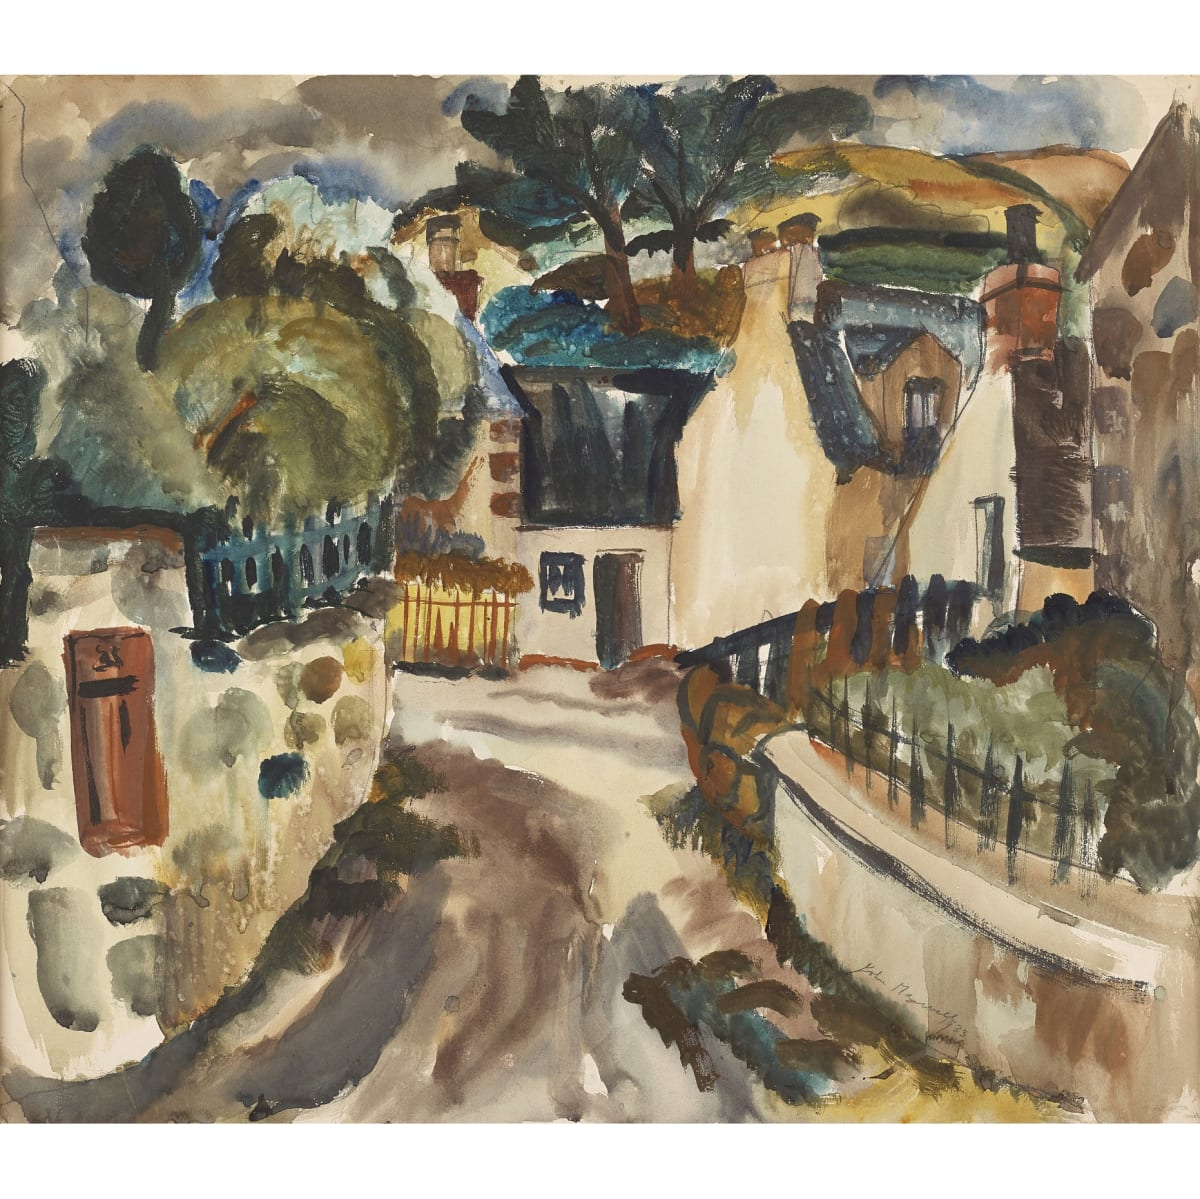 John Maxwell The Village Letterbox (possibly Durisdeer, Dumfries), 1933 signed and dated 1933 pencil and watercolour 19 x 22 inches